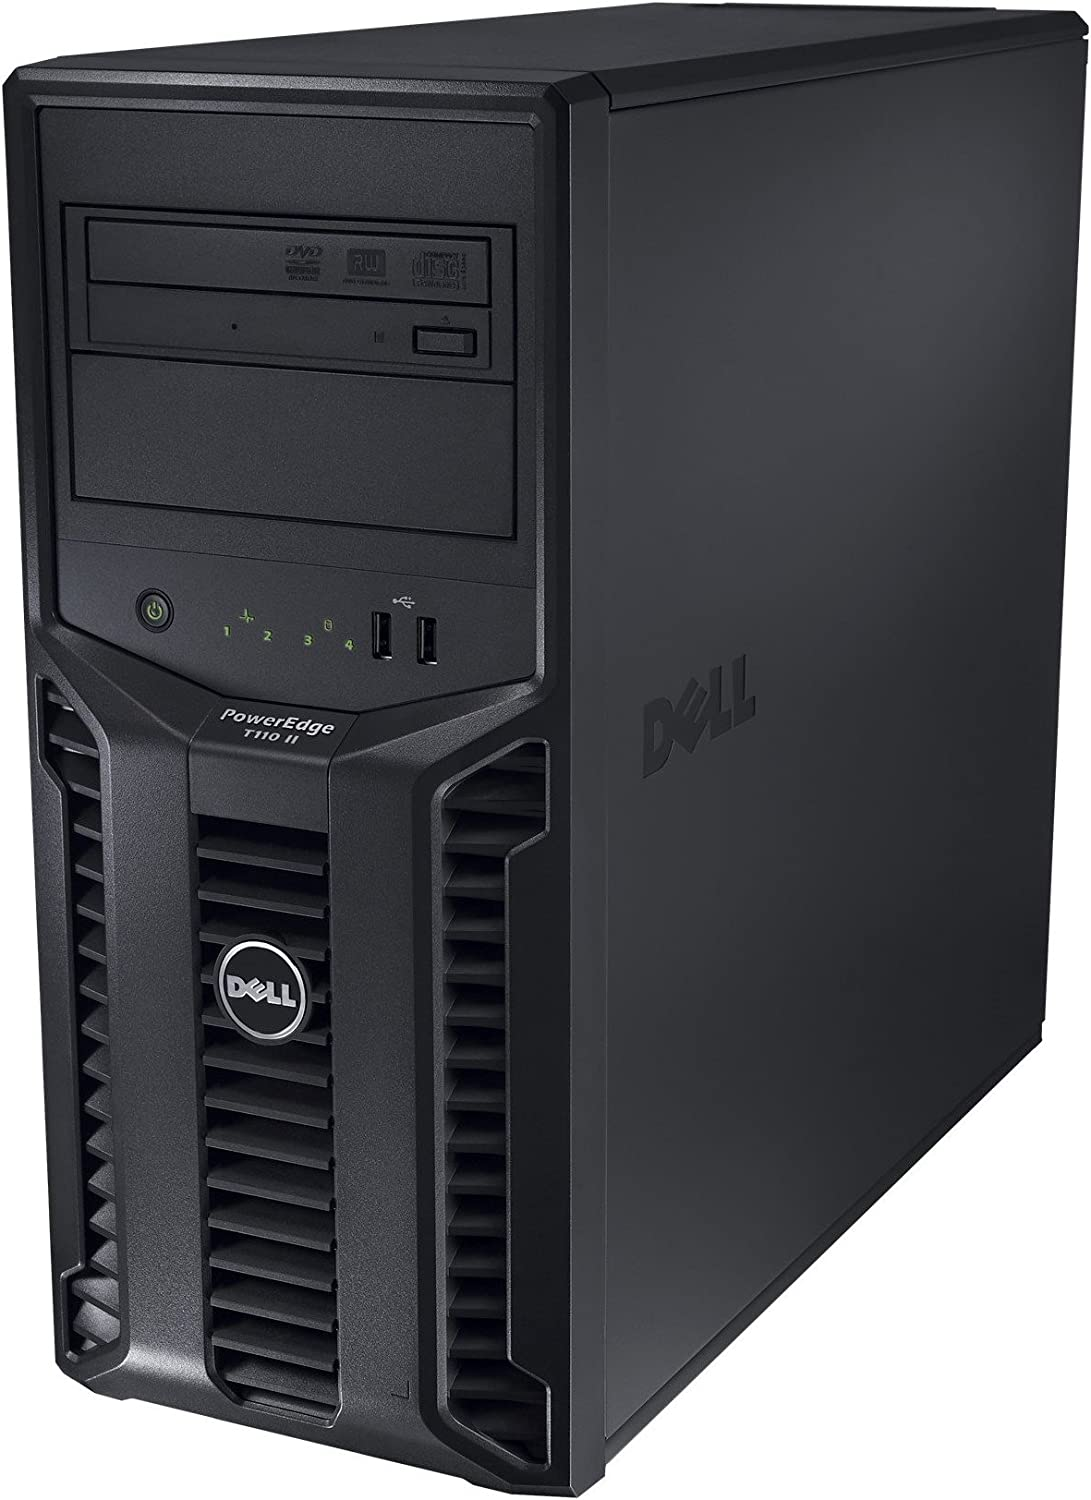 Dell PowerEdge T110 II Tower Server